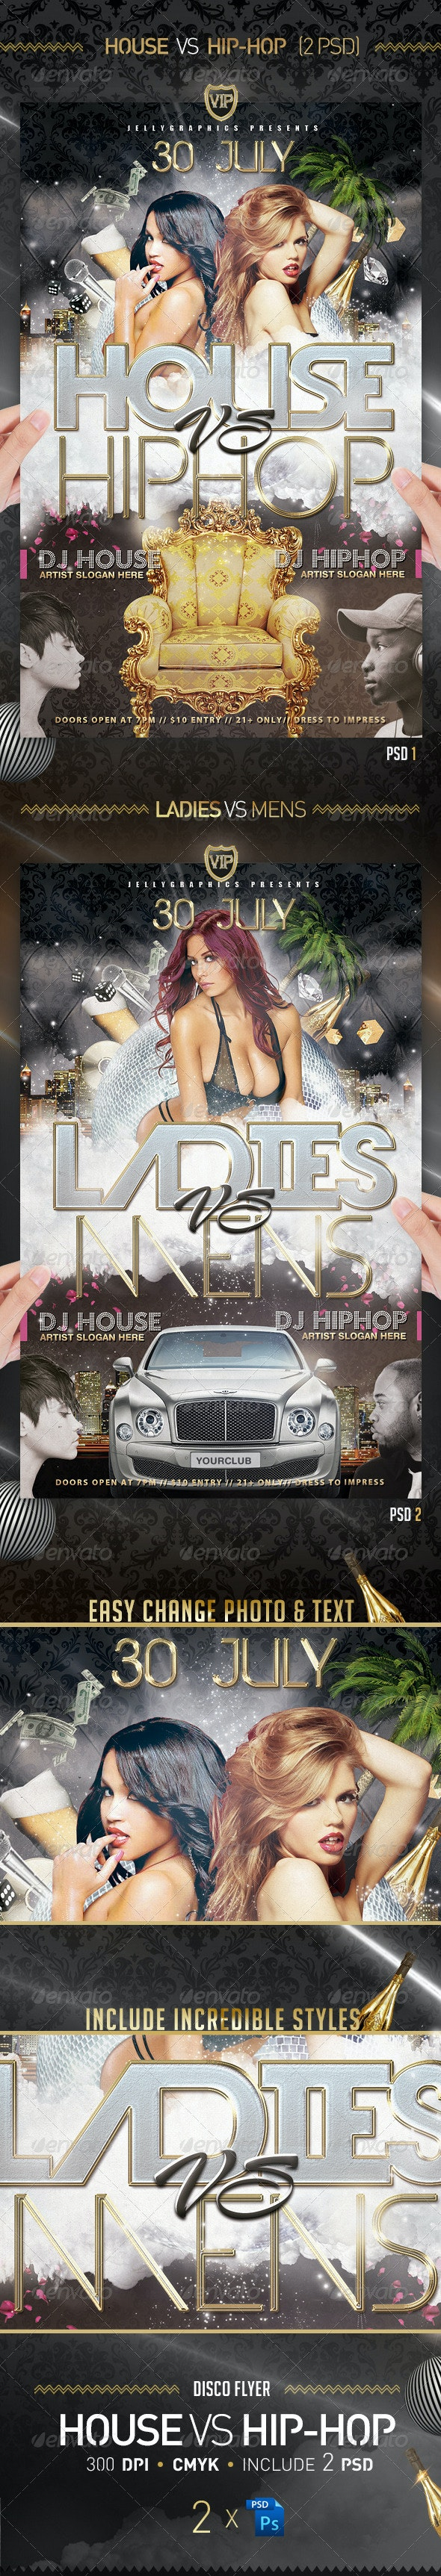 House VS Hip Hop Flyer Party Template - Flyers Print Templates